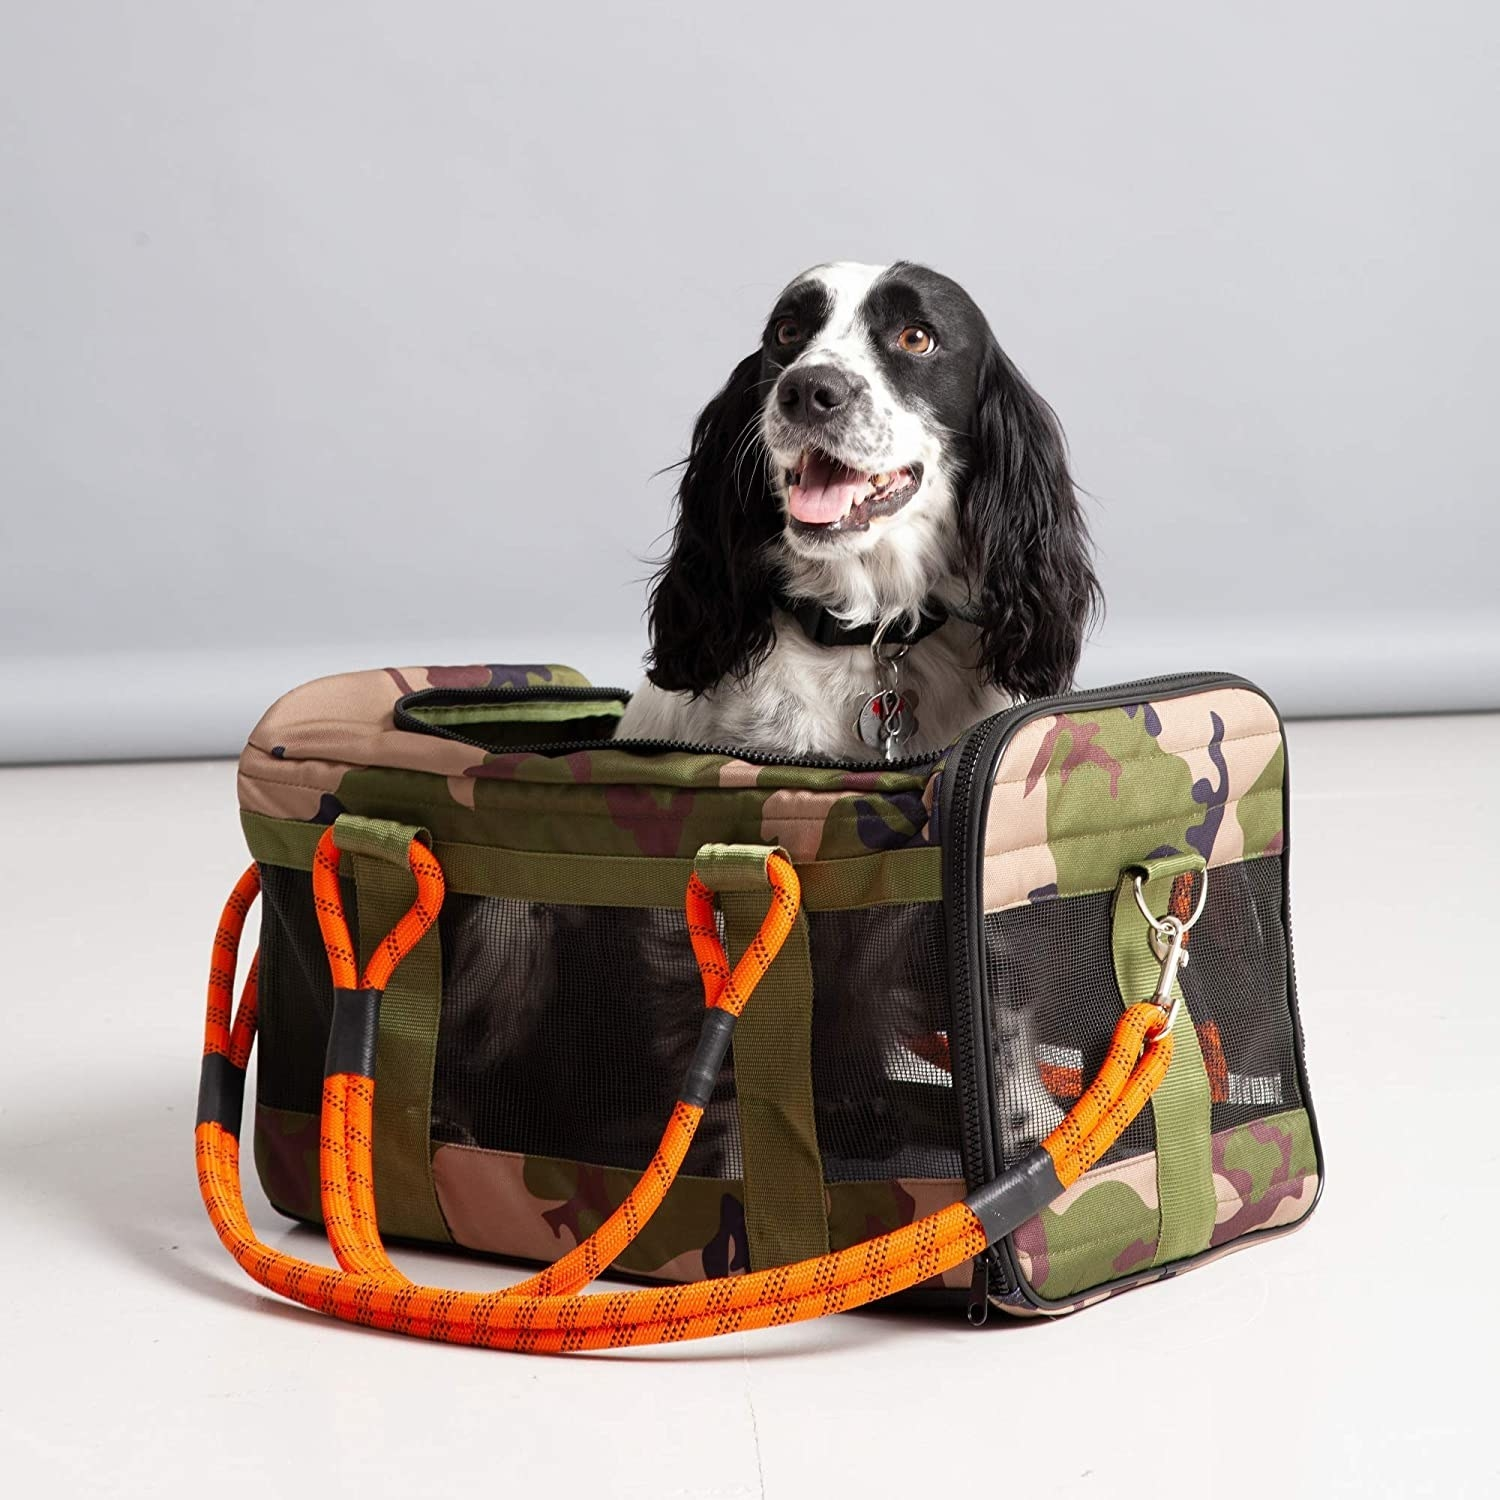 A medium white and black dog sitting in the camo print bag, which has thick neon orange straps